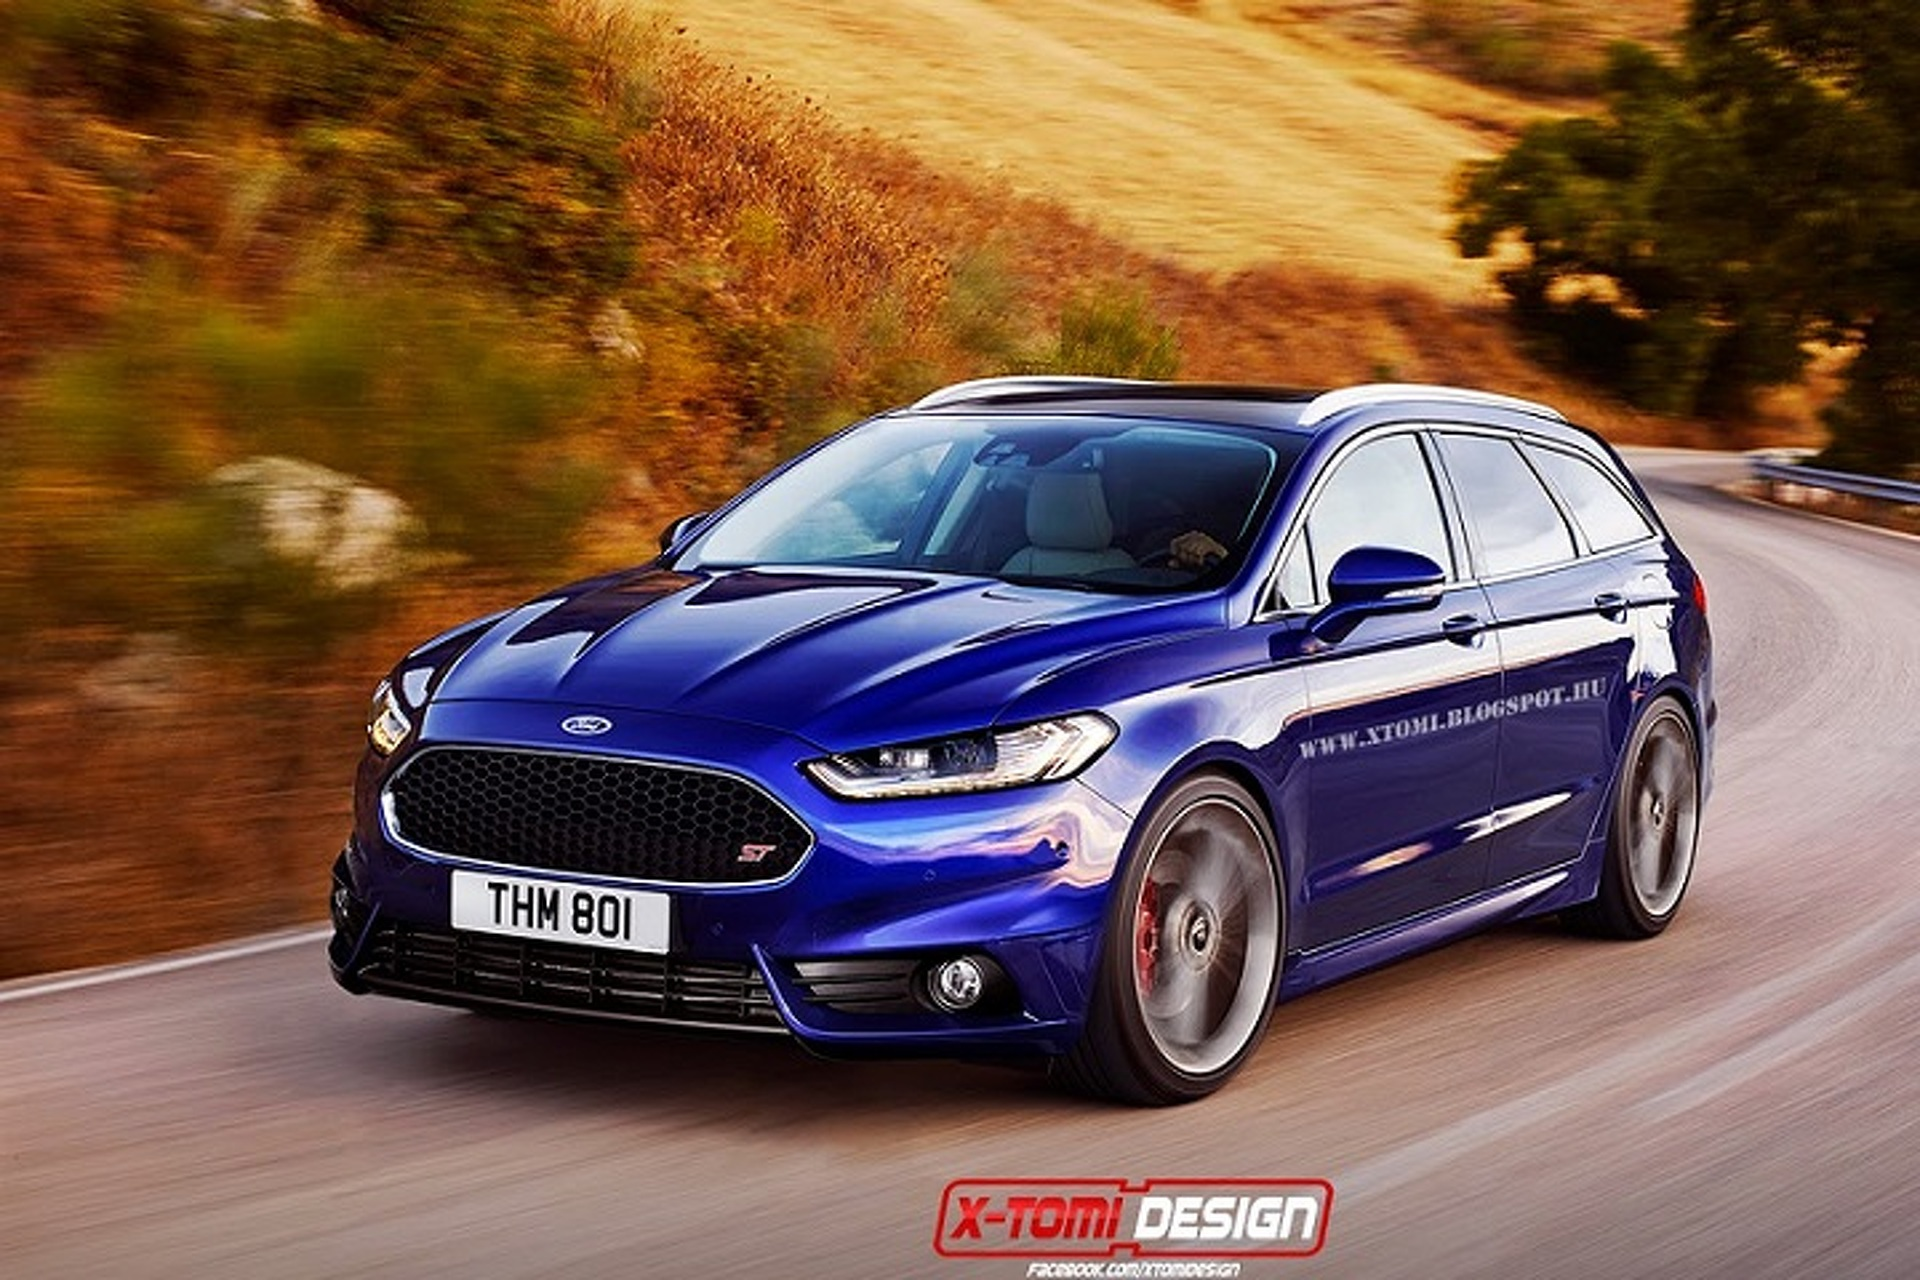 Ford Fusion/Mondeo ST Rendering Makes Us Drool